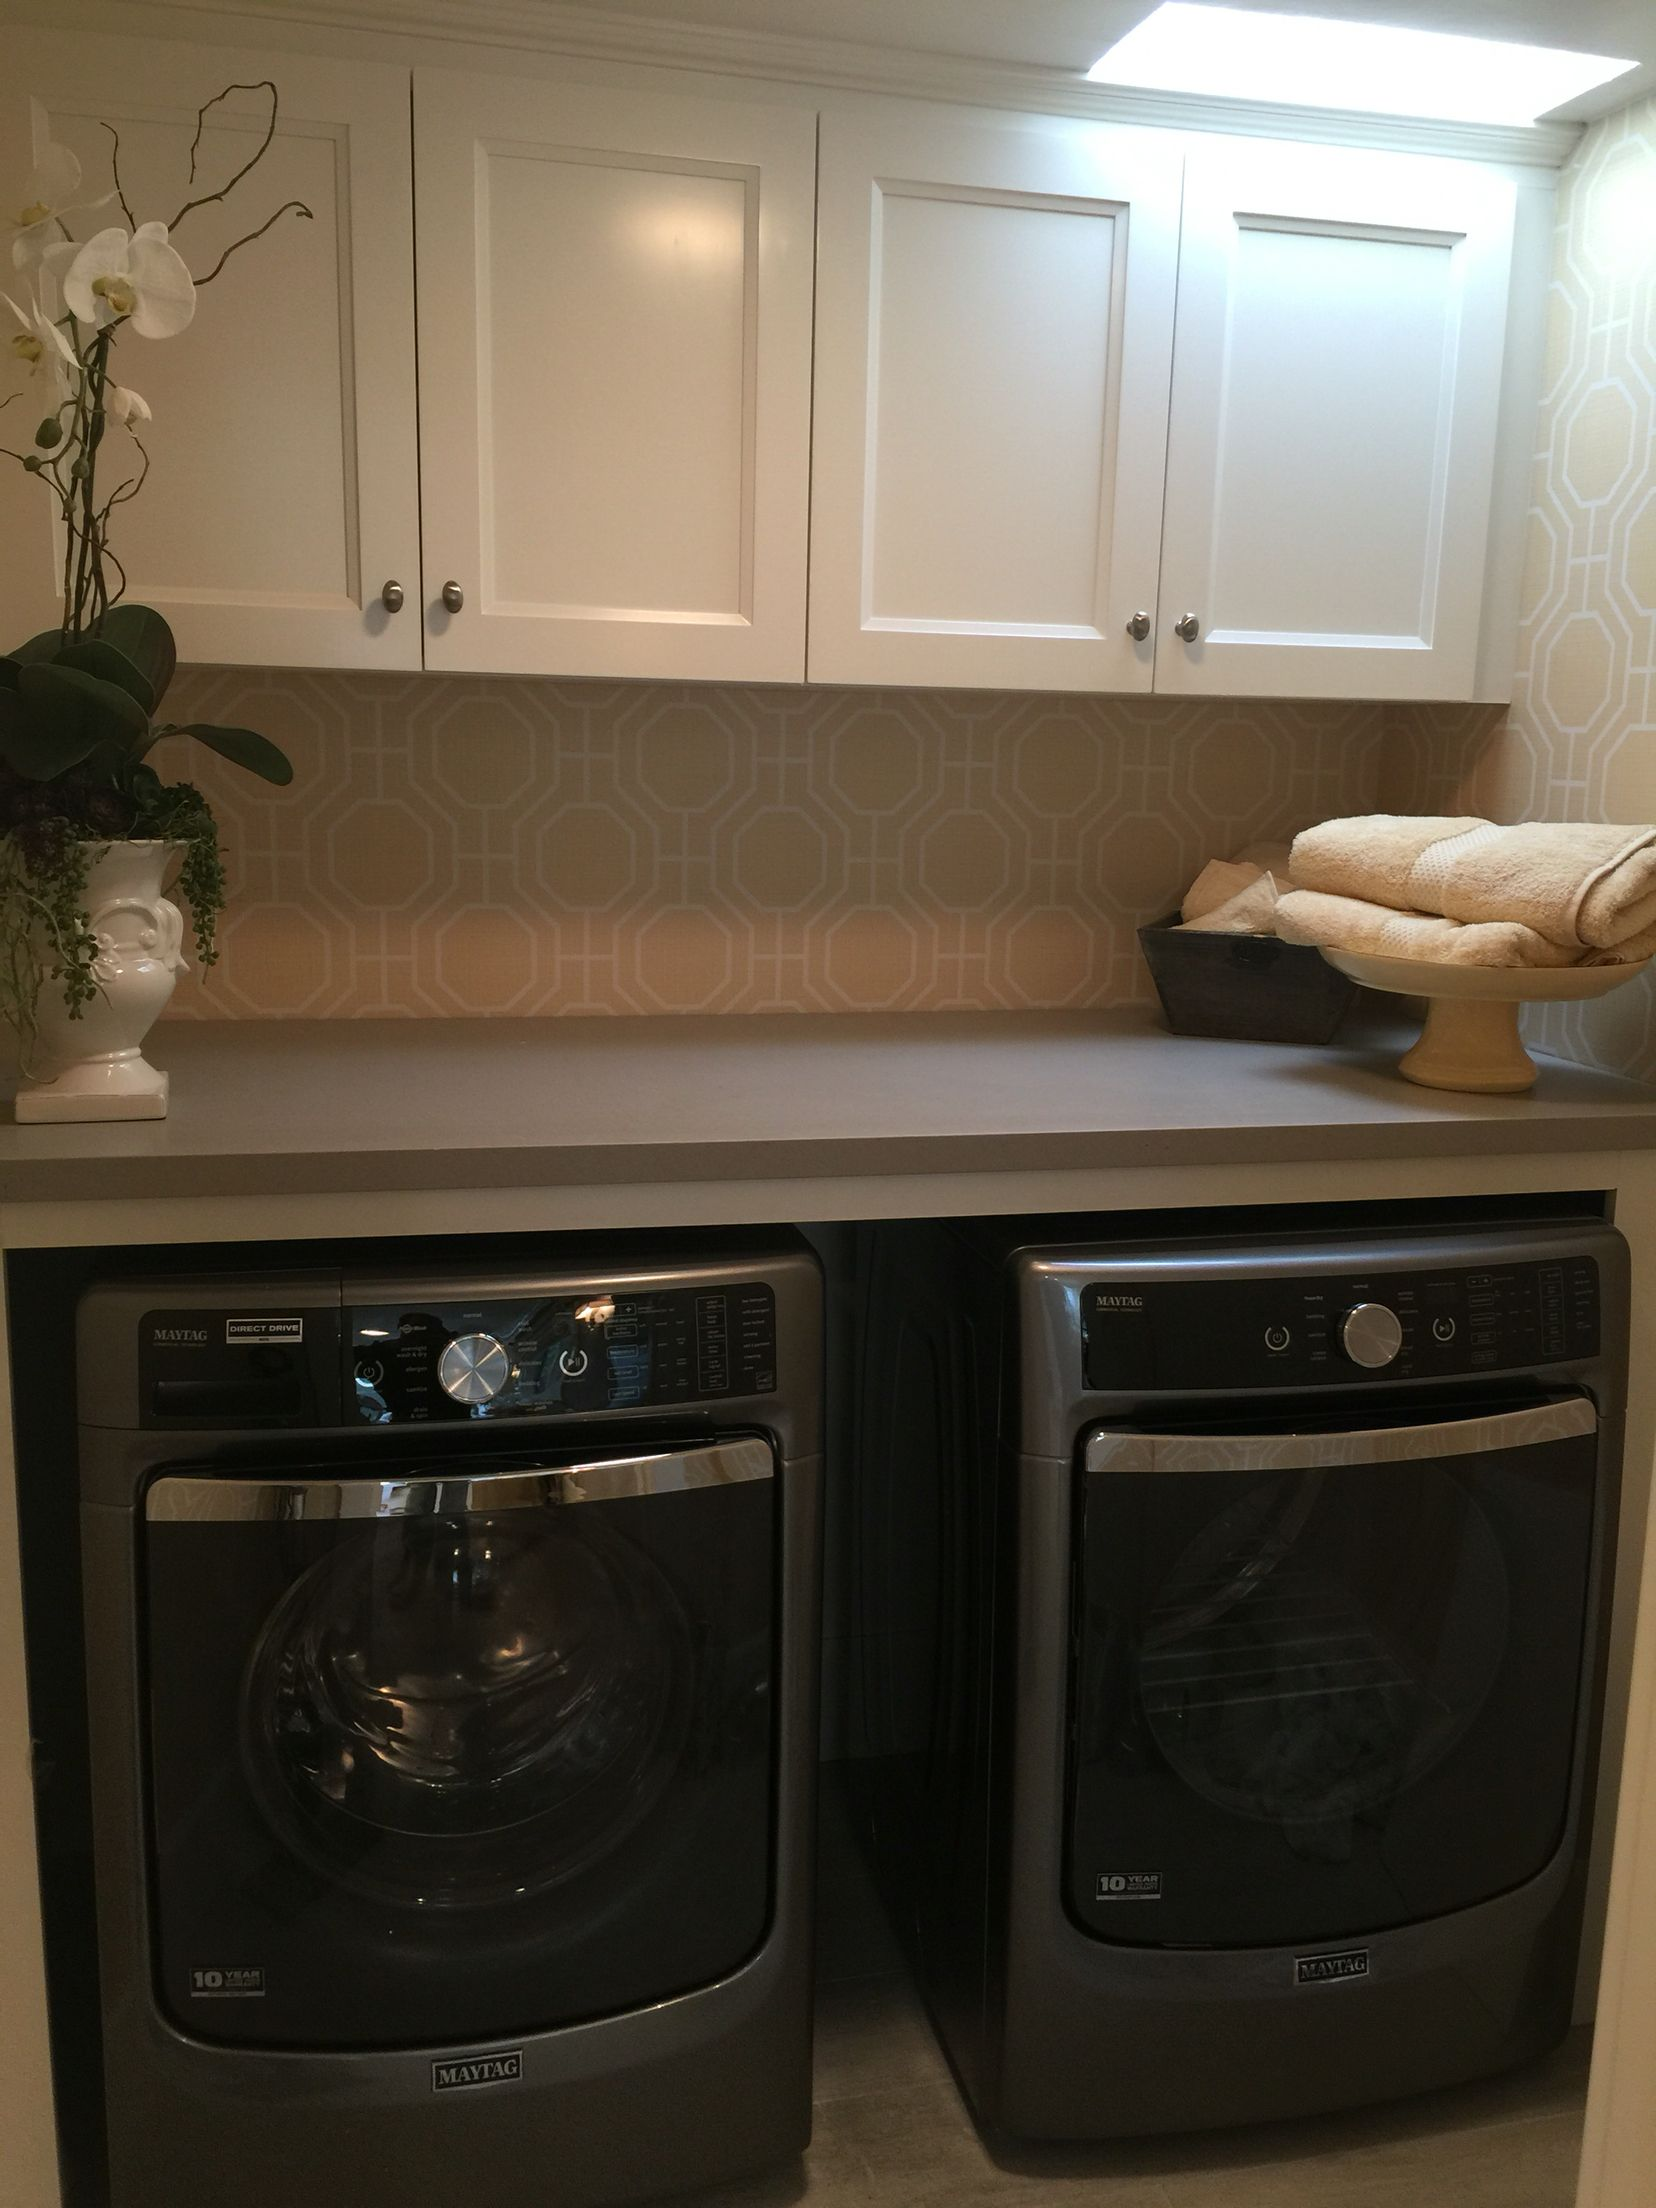 Laundry Room Design Grey Maytag Washer And Dryer White Cabinets